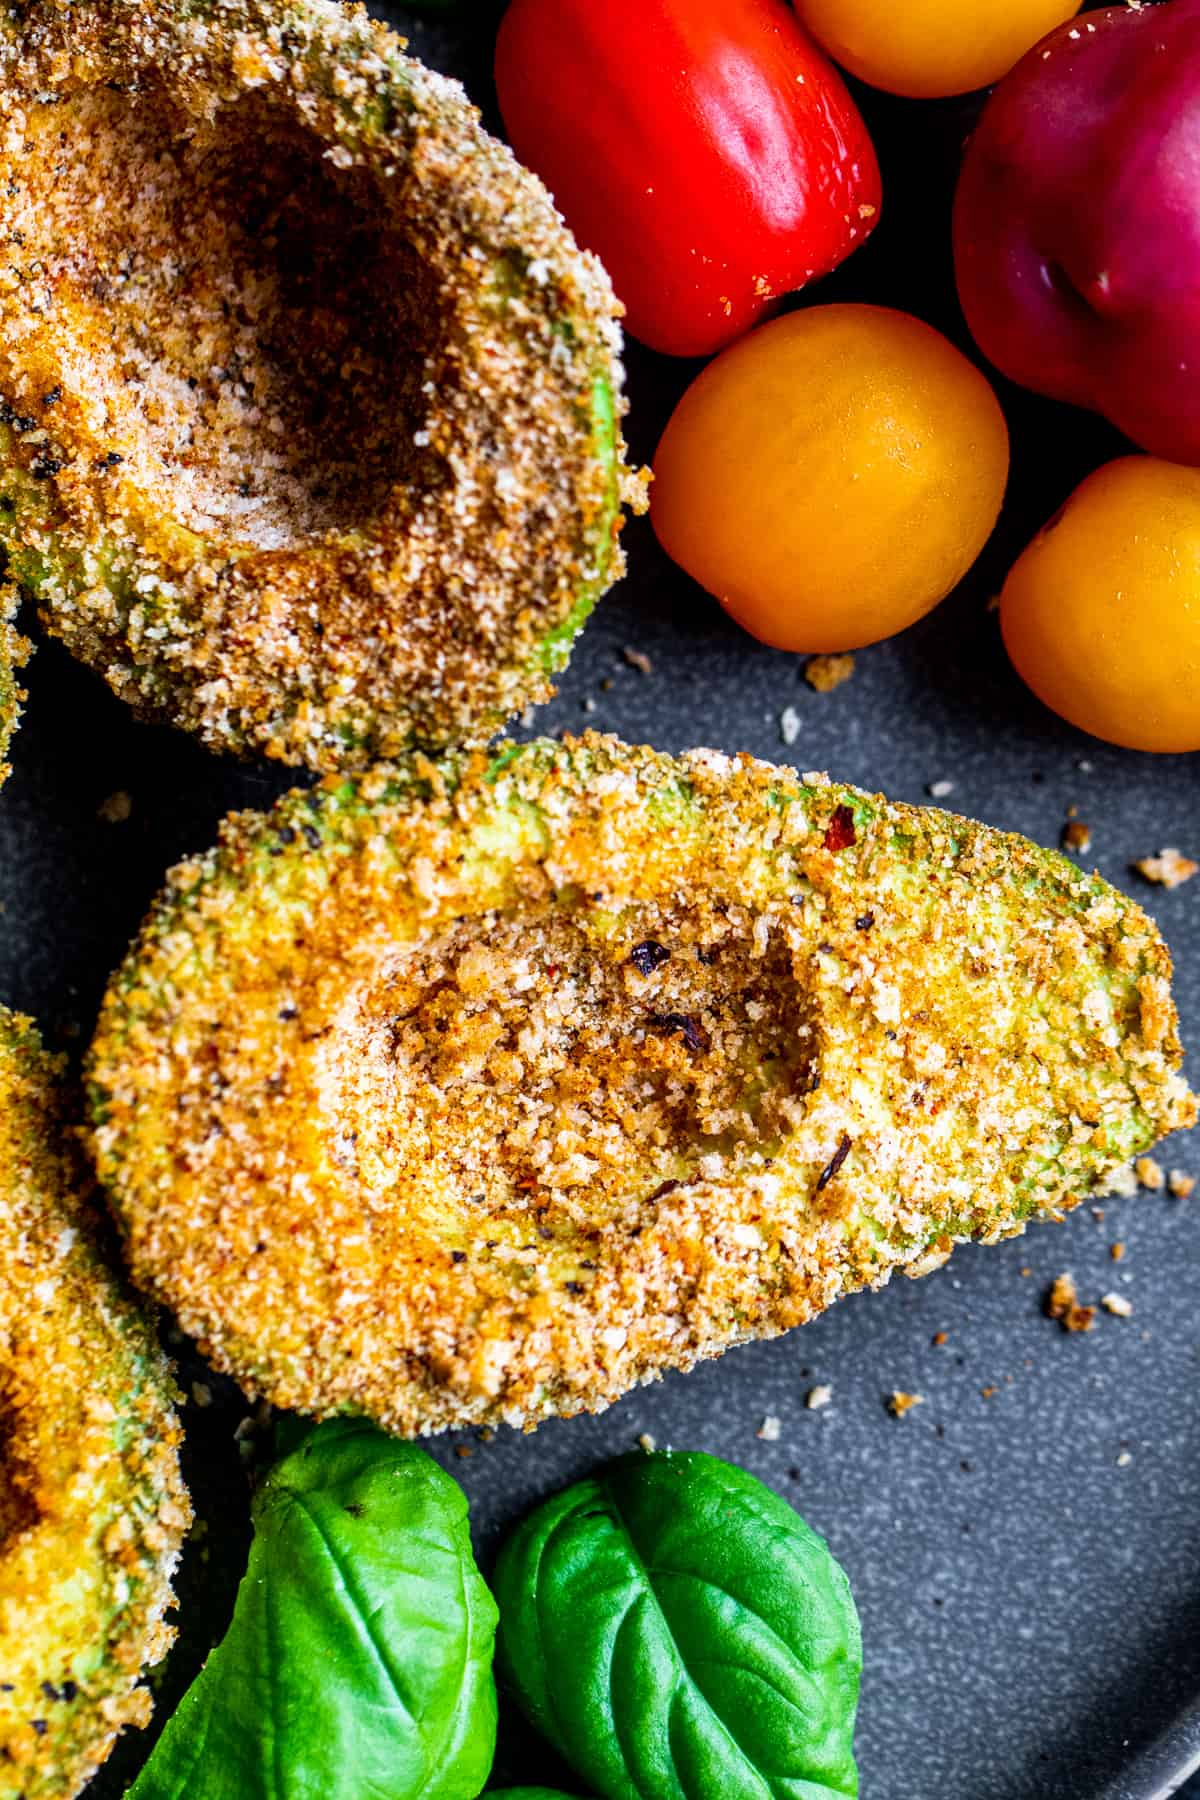 Overhead shot of breaded avocados on gray plate.